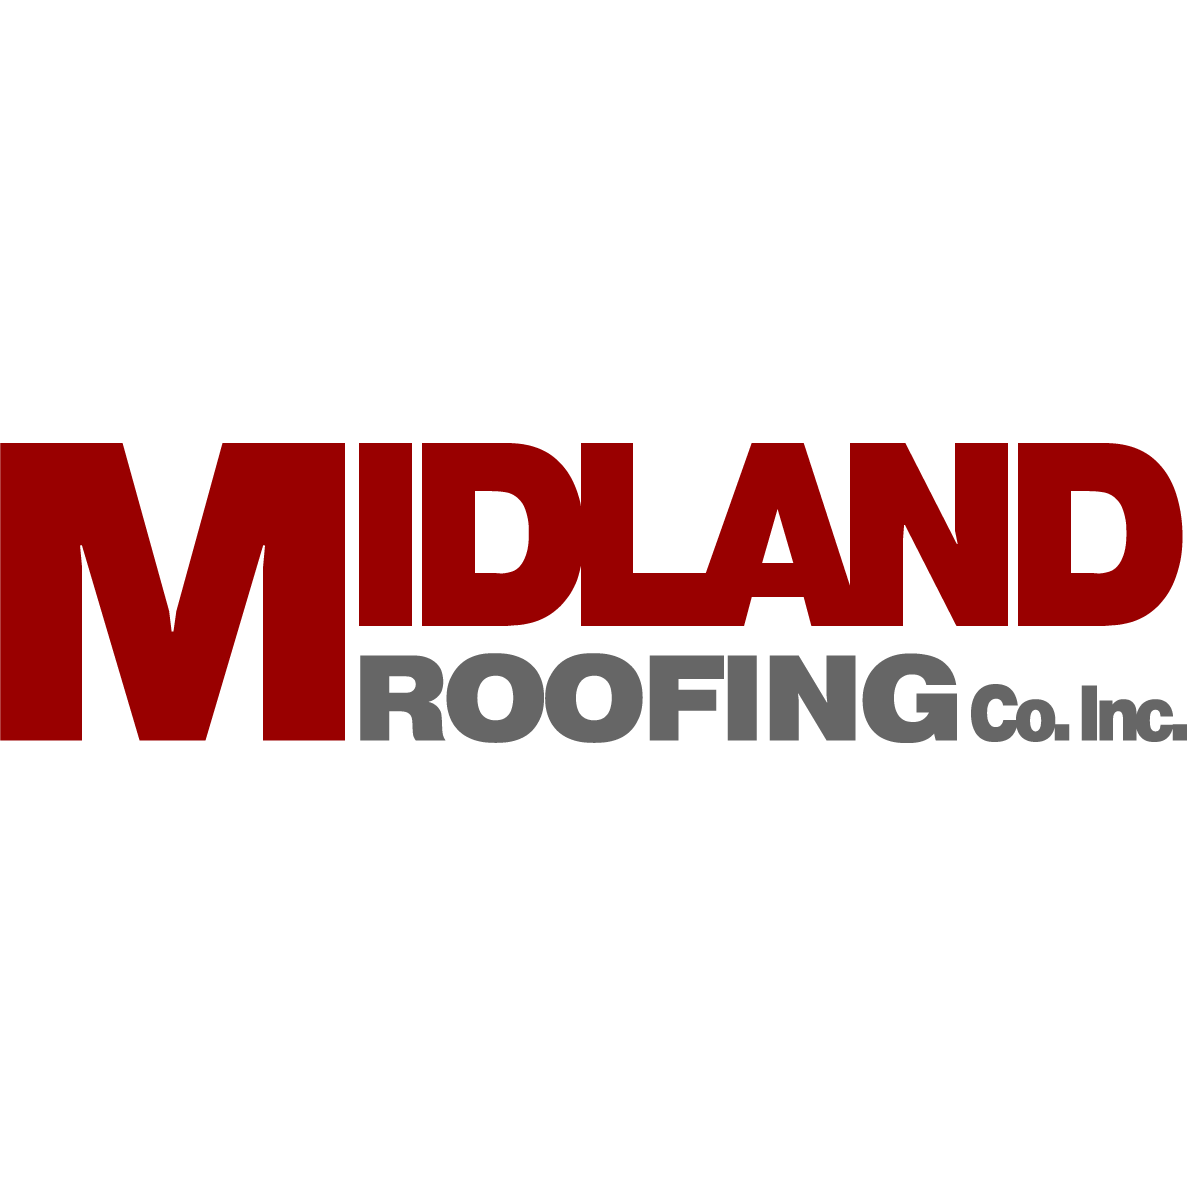 Midland Roofing Company, Inc. - East Greenwich, RI - Roofing Contractors